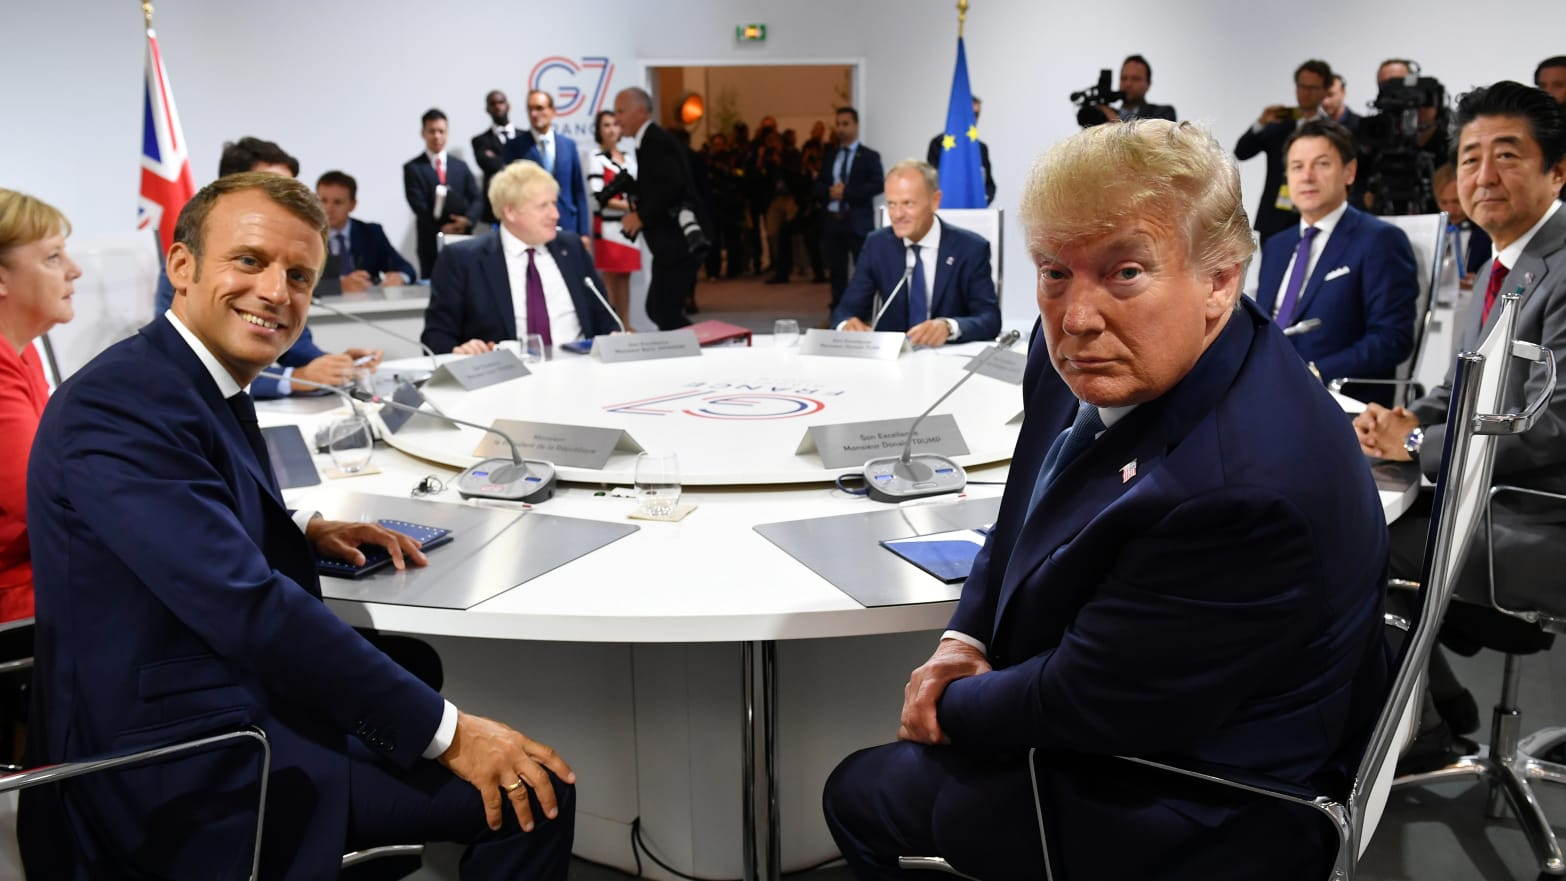 Donald Trump Upstaged at G7 By the Foreign Minister of ... Iran